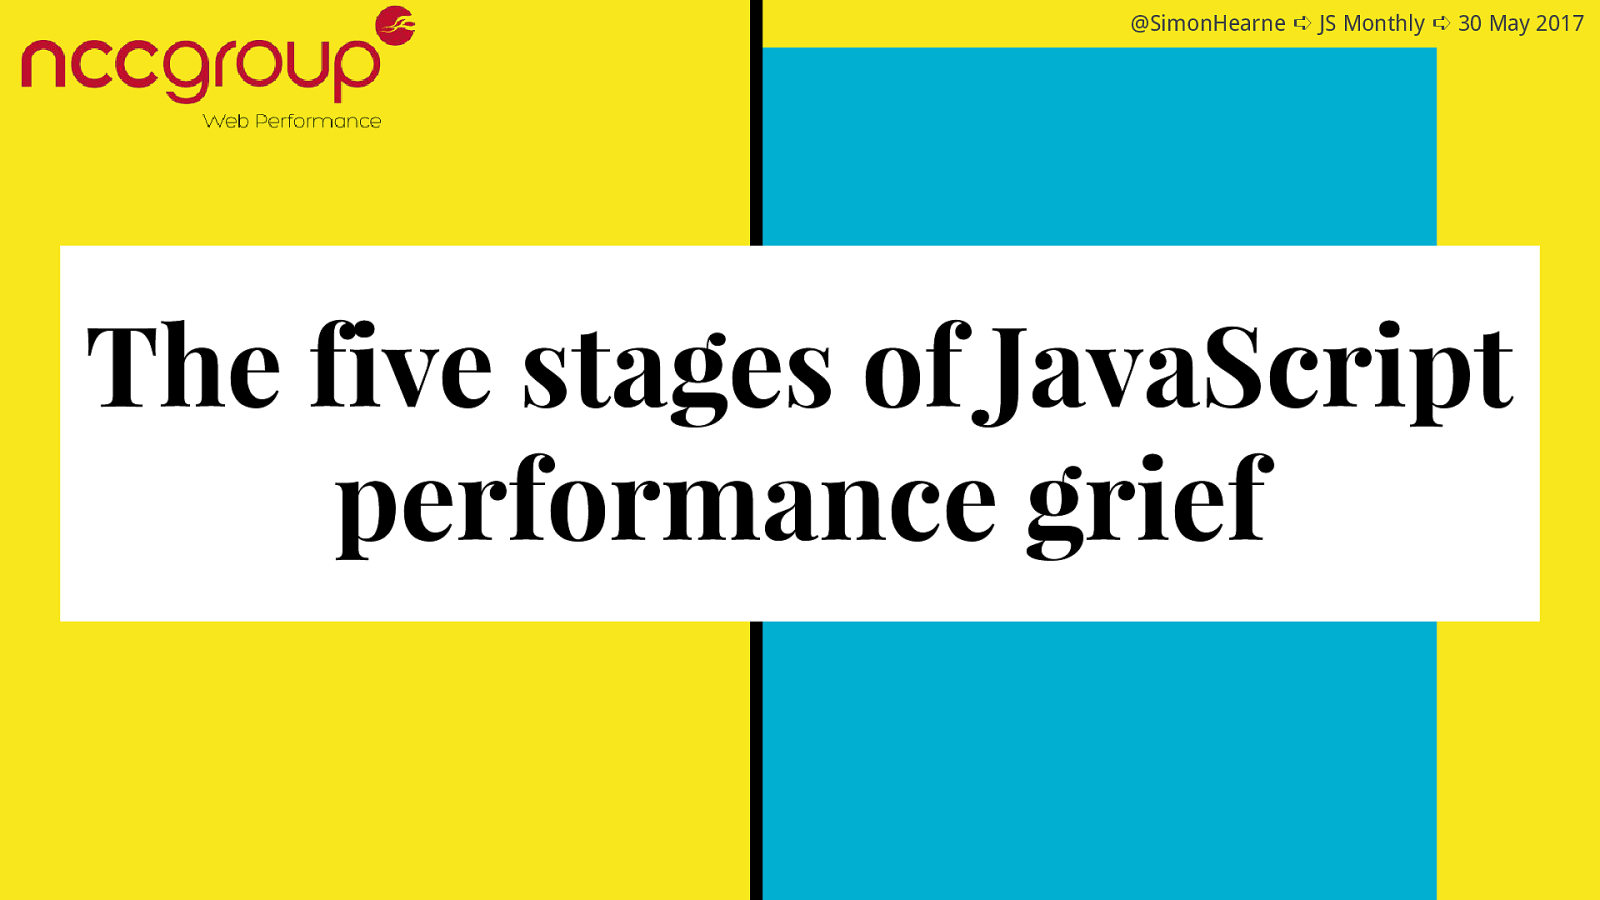 The five stages of JavaScript performance grief